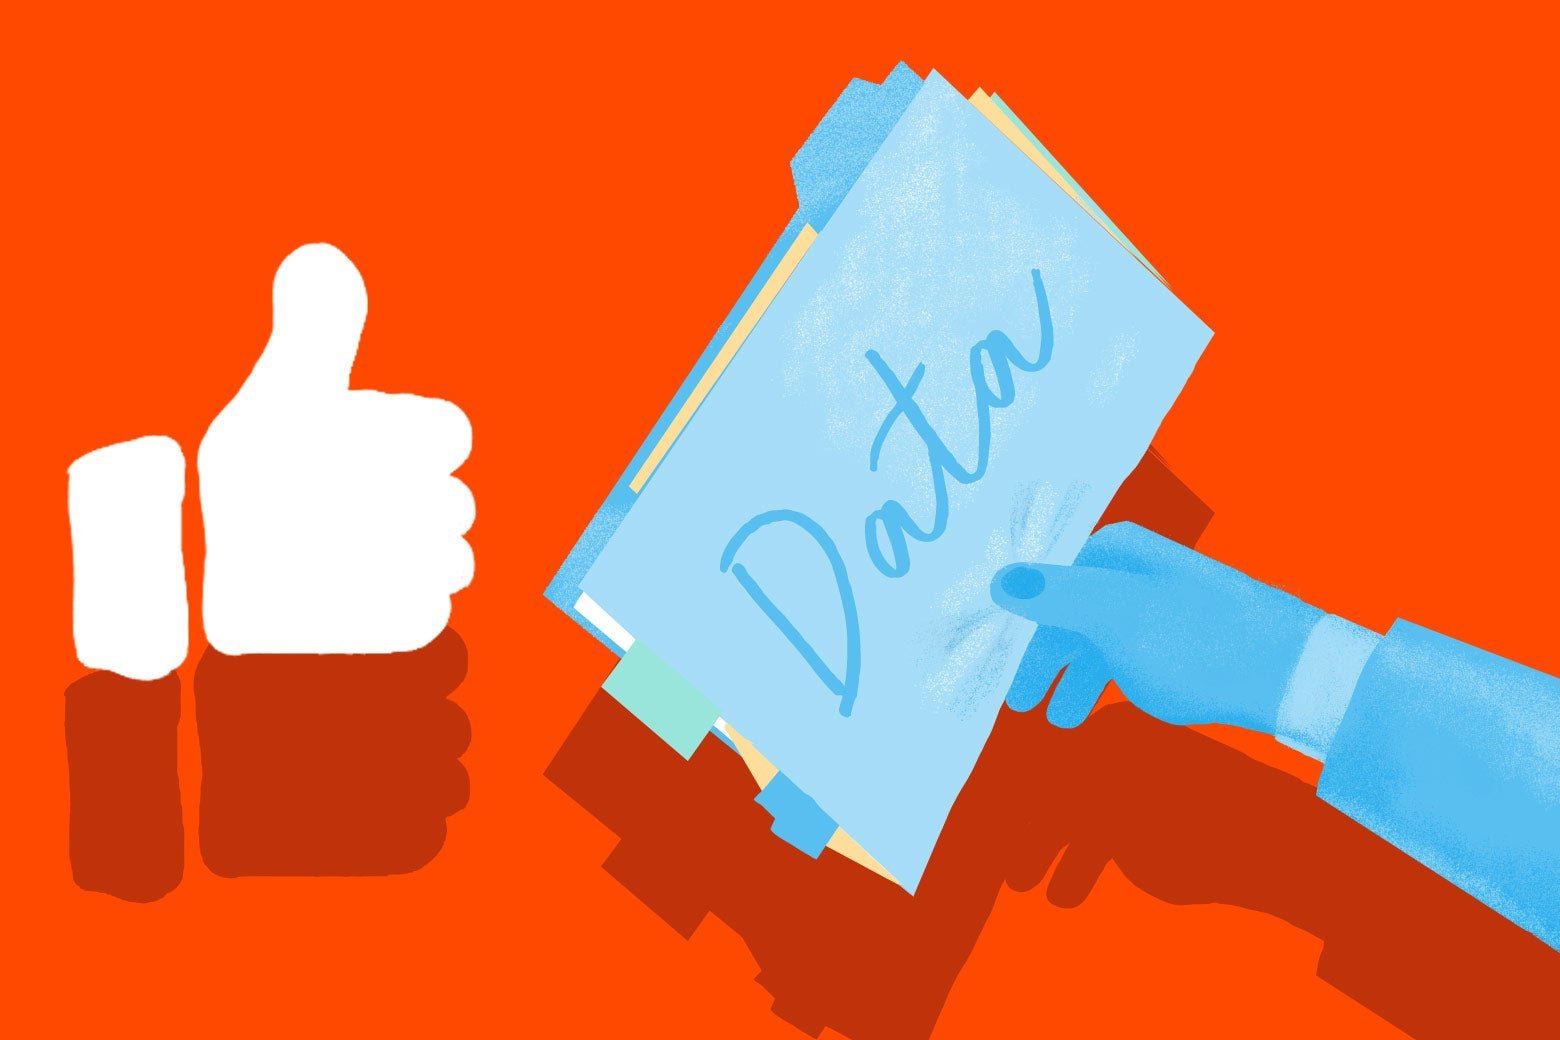 A Facebook thumbs-up receiving a dossier of data.